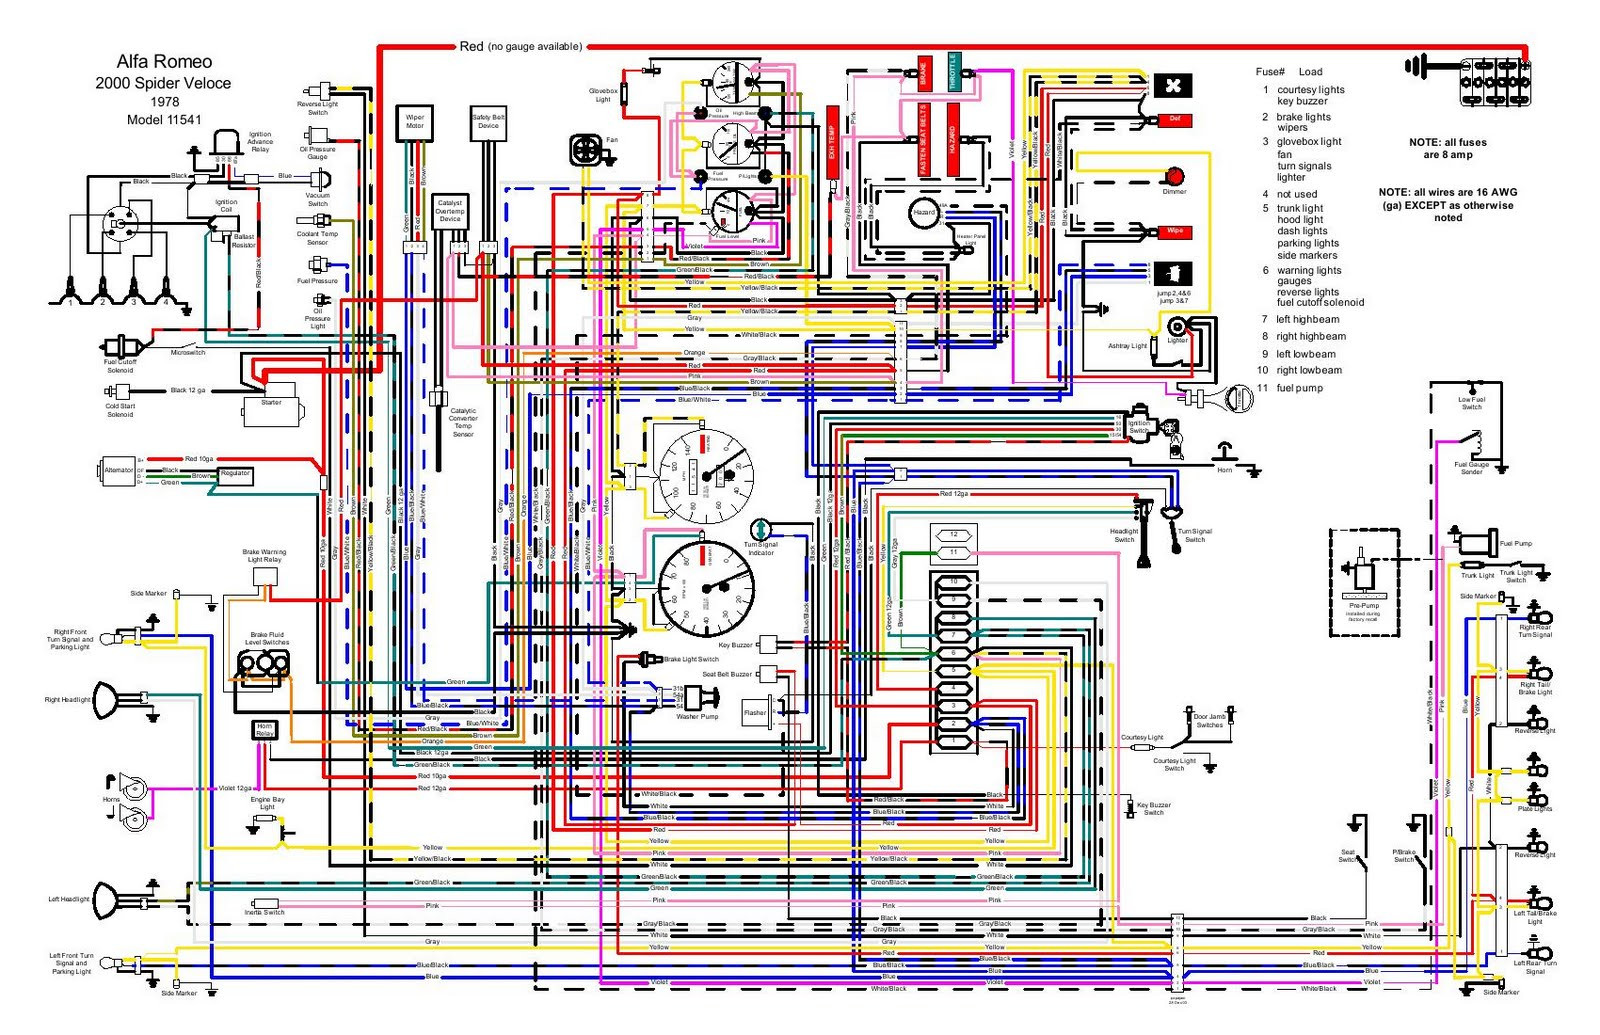 Line Drawings Electrical Diagrams Pdf Trusted Wiring Diagrams